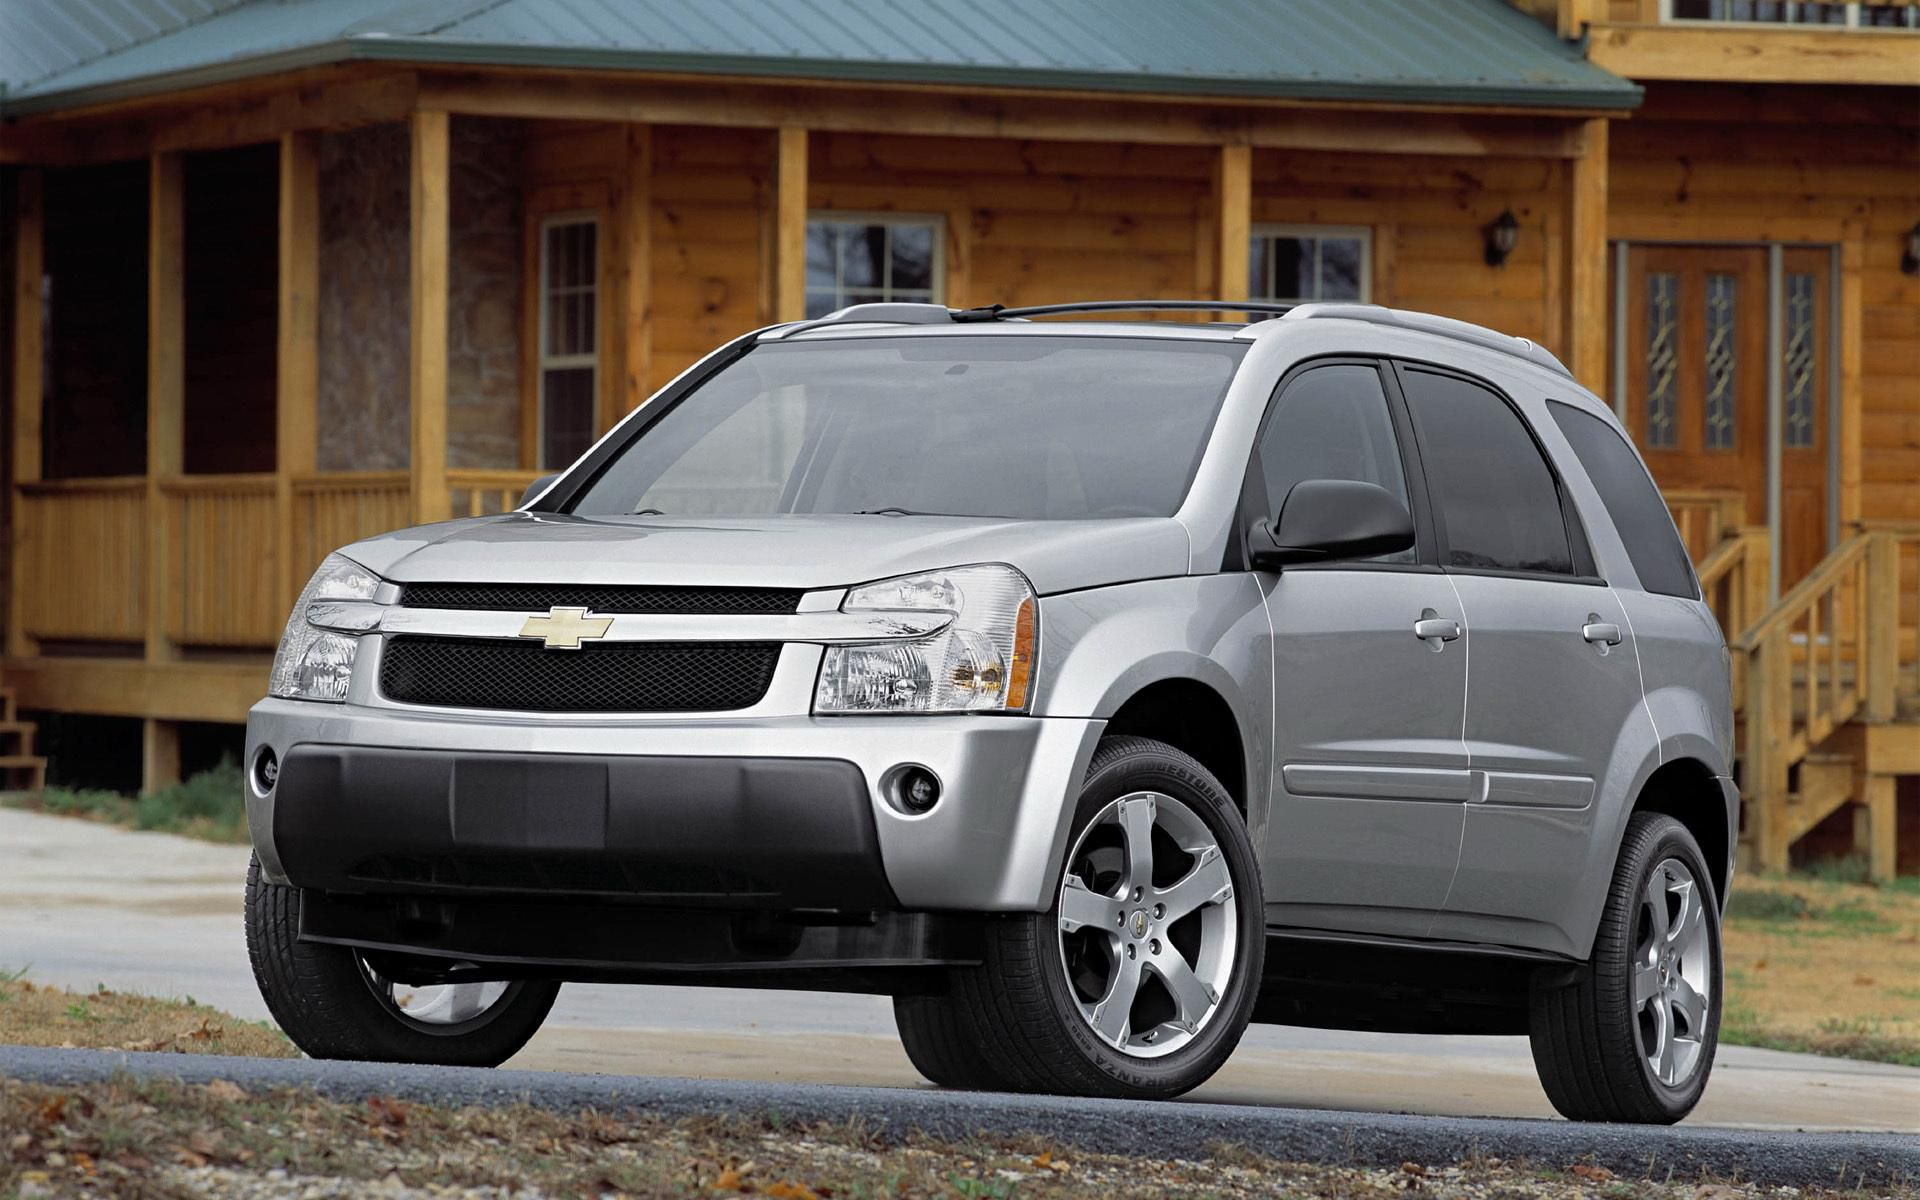 Chevrolet SUV 2005 photo - 2